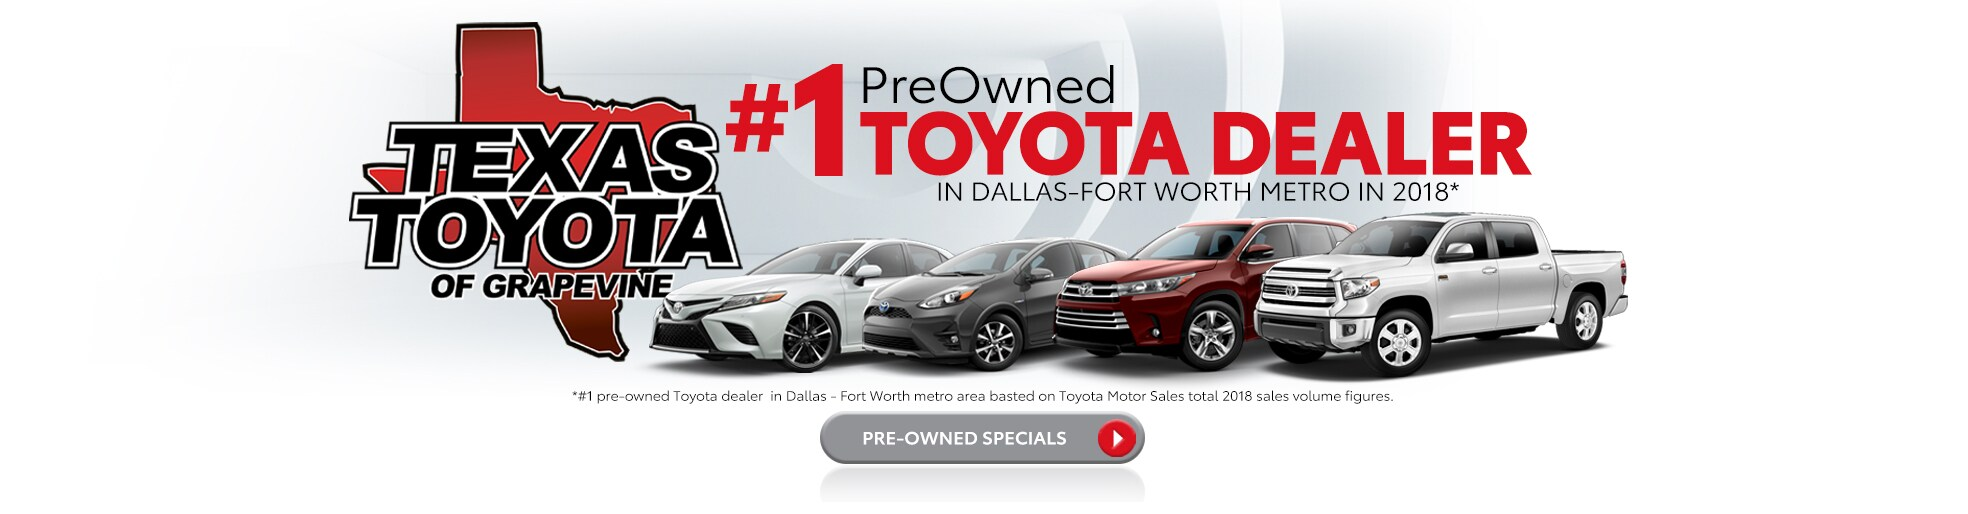 Toyota Dealerships Dfw >> New Used Cars Trucks Suvs Toyota Dealer In Grapevine